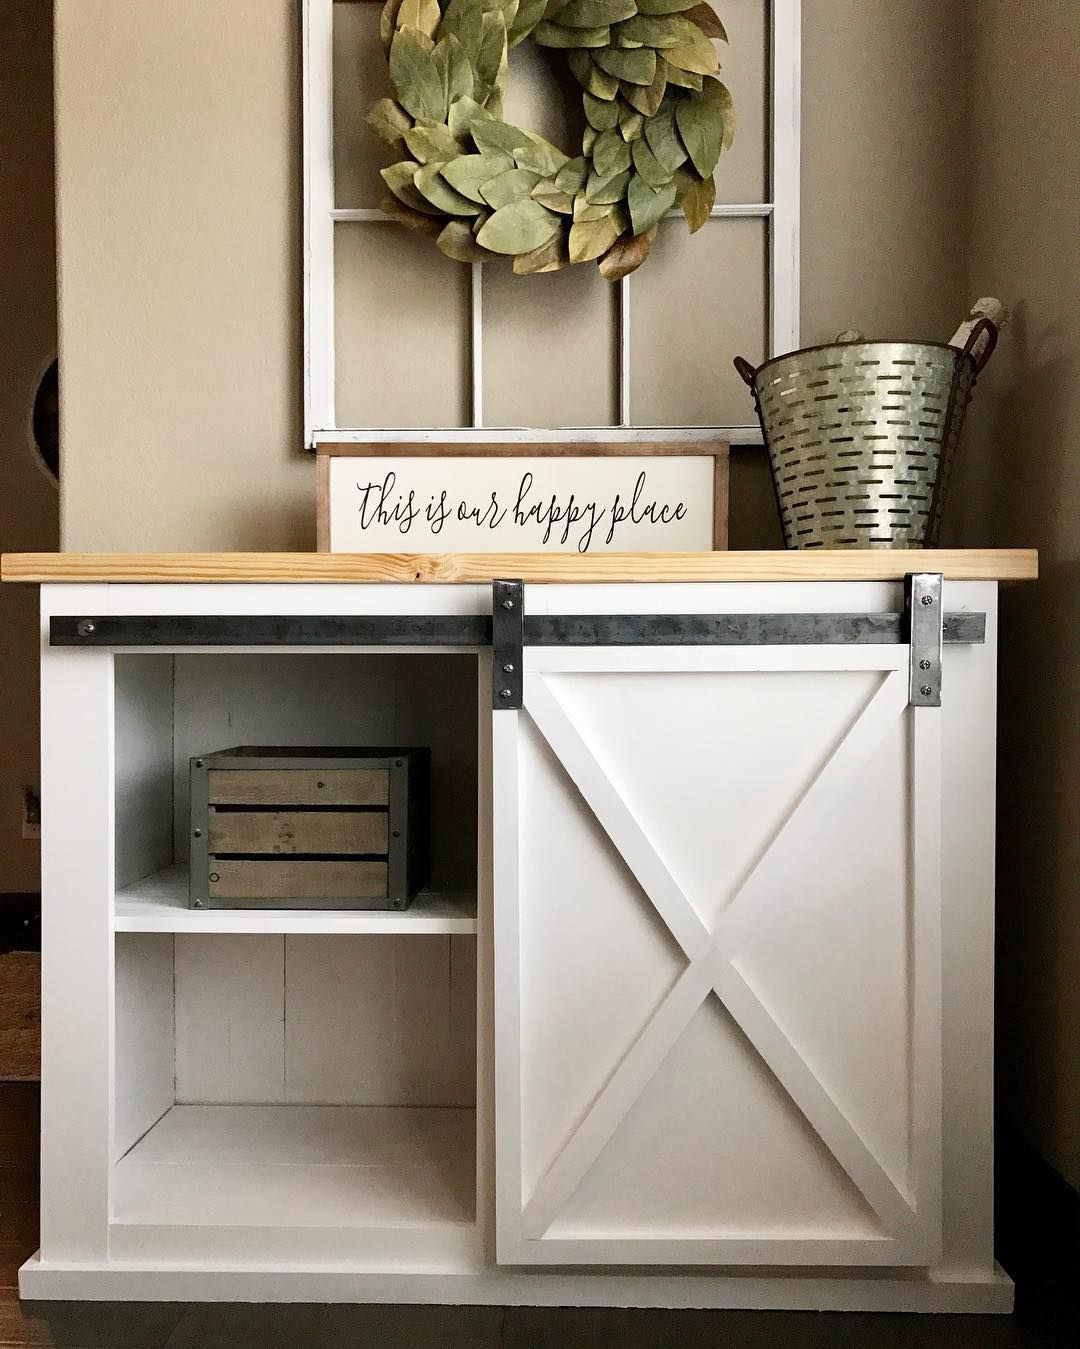 Barn Door Console By Sarahashleyallen On Ig Modified From Http Www